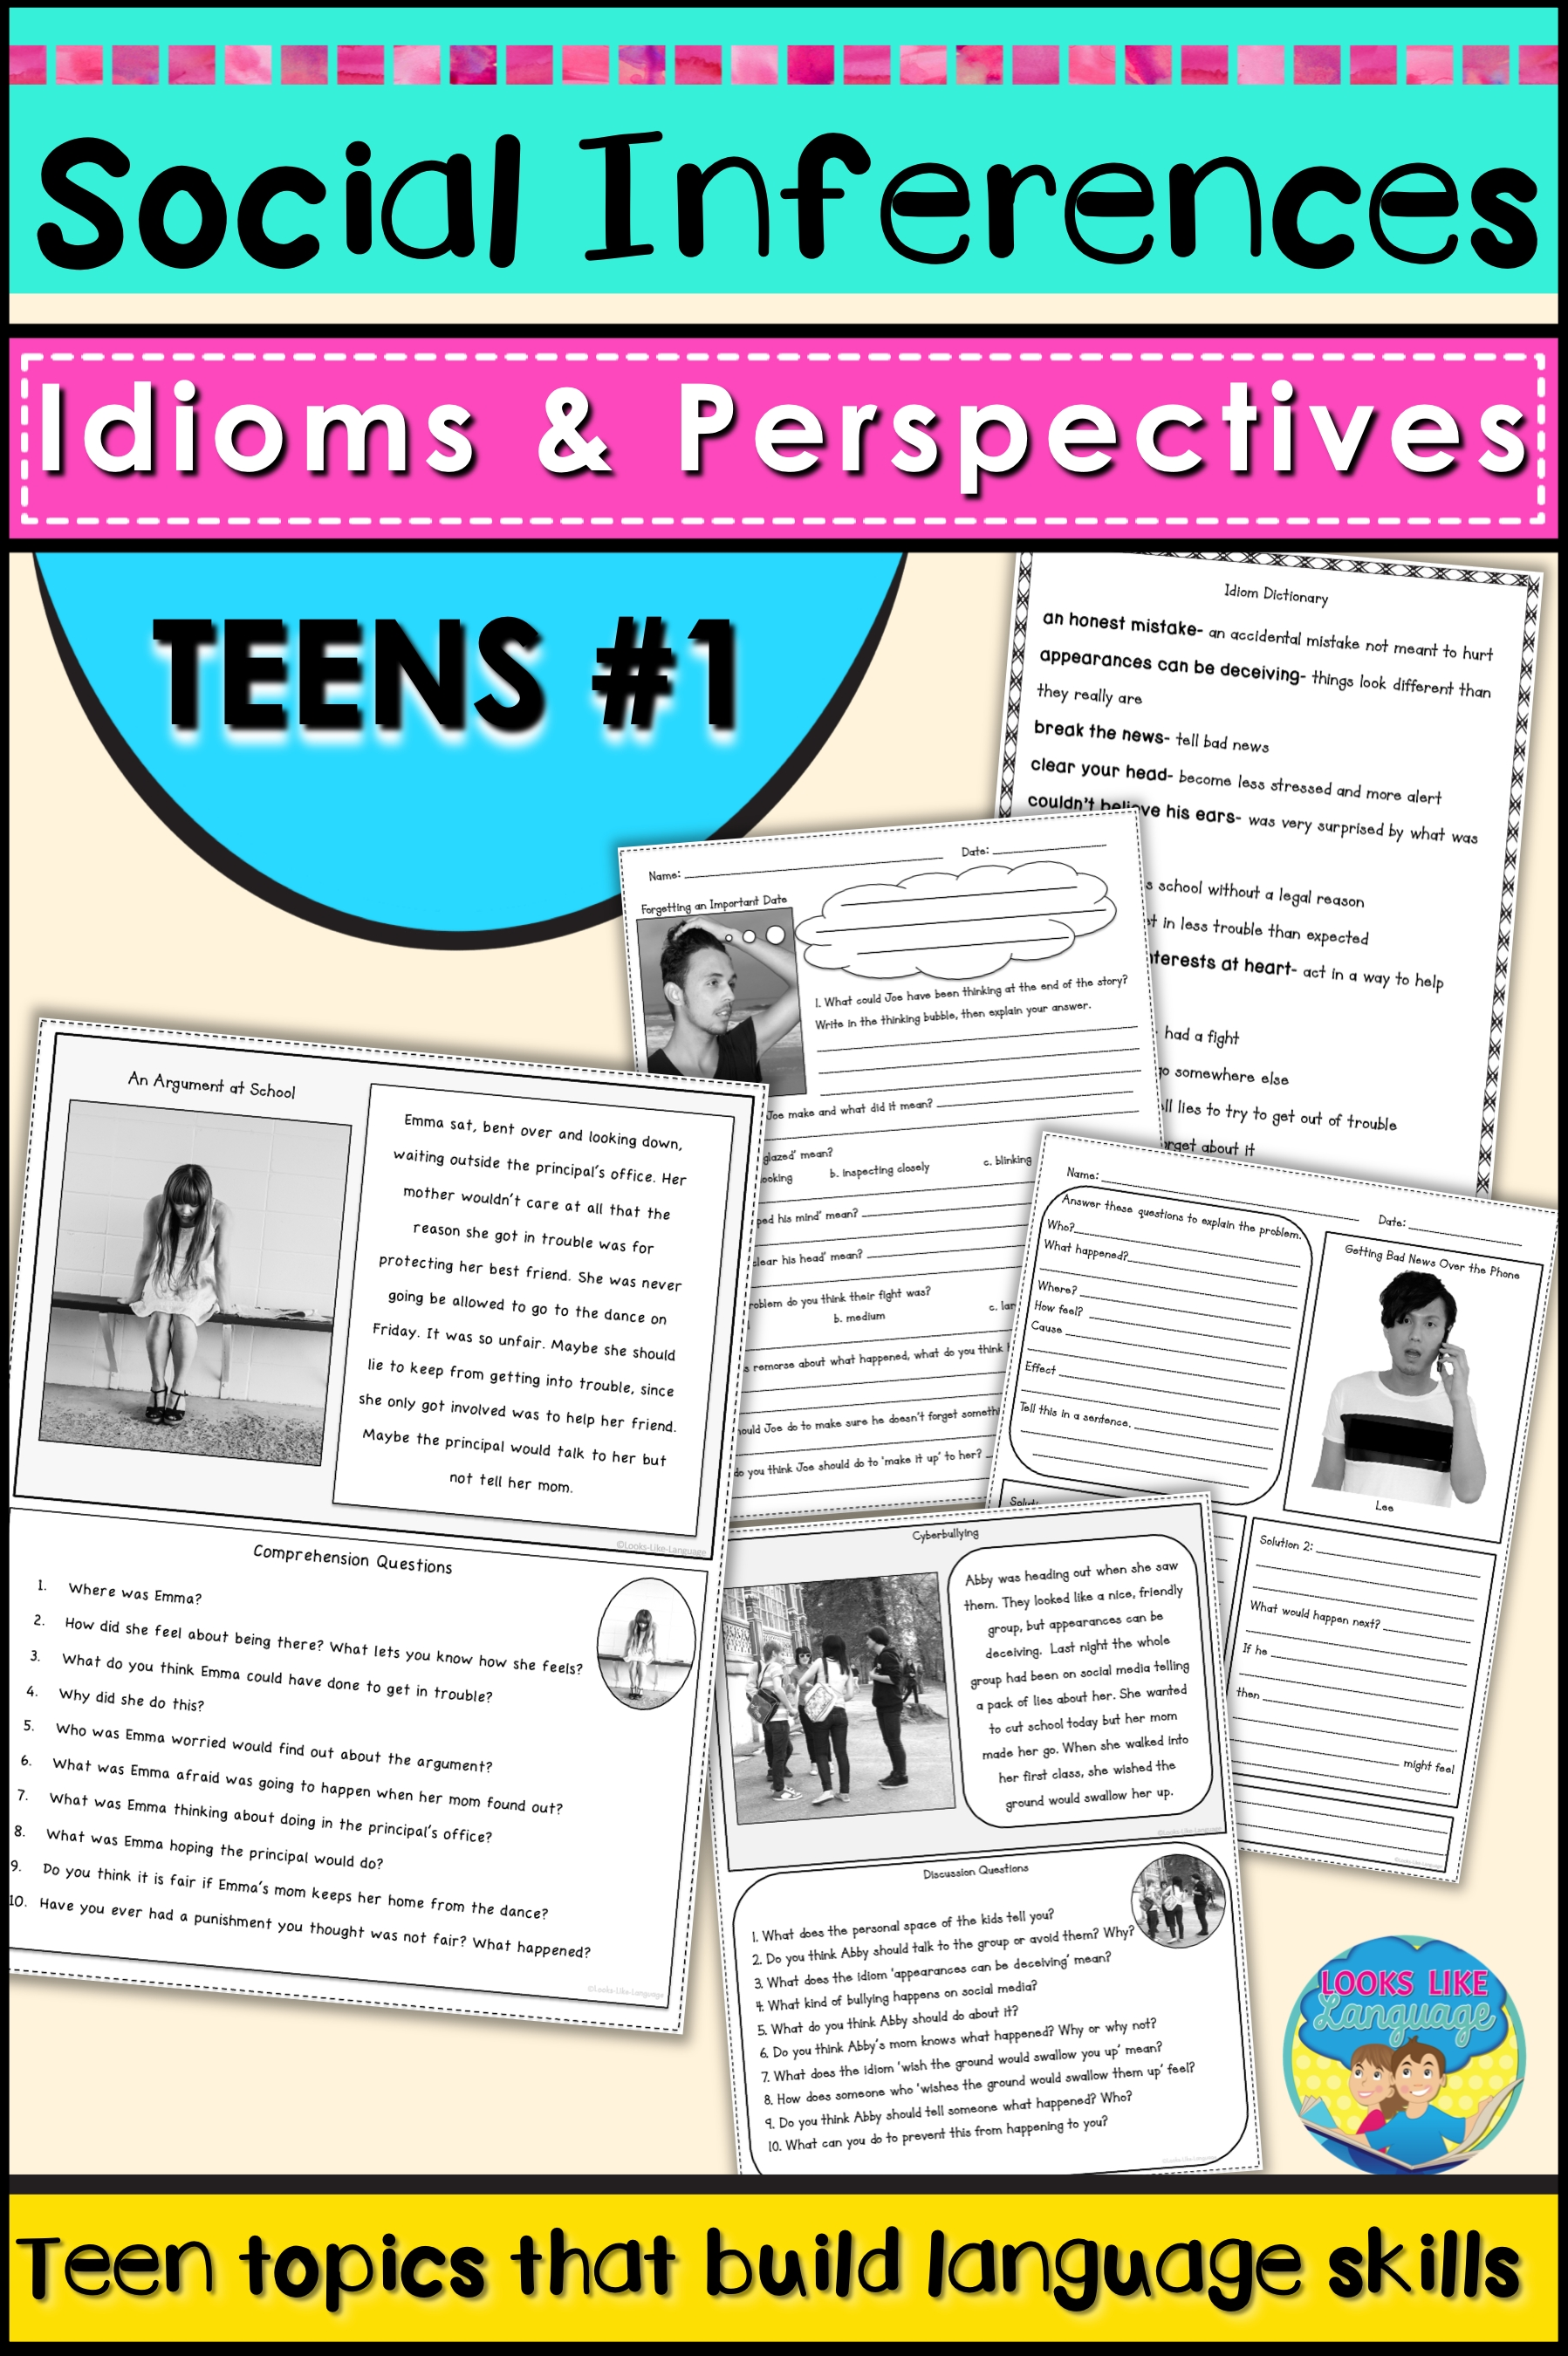 How To Improve Social Skills That Teens Need For Life